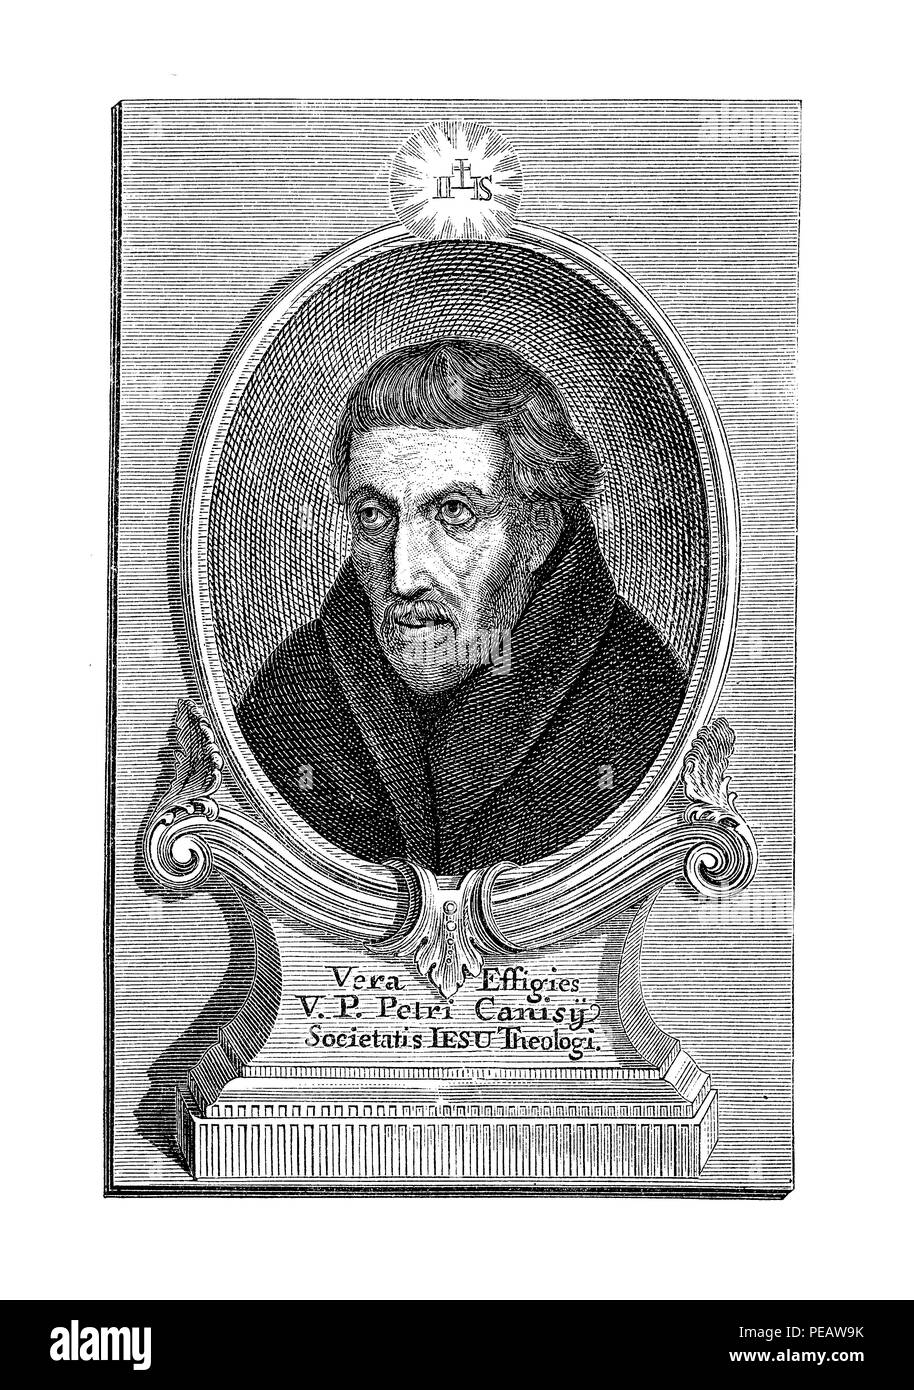 Engraving portrait of  Peter Canisius (1521-1597), Dutch Jesuit and catholic priest during the Protestant Reformation era. - Stock Image